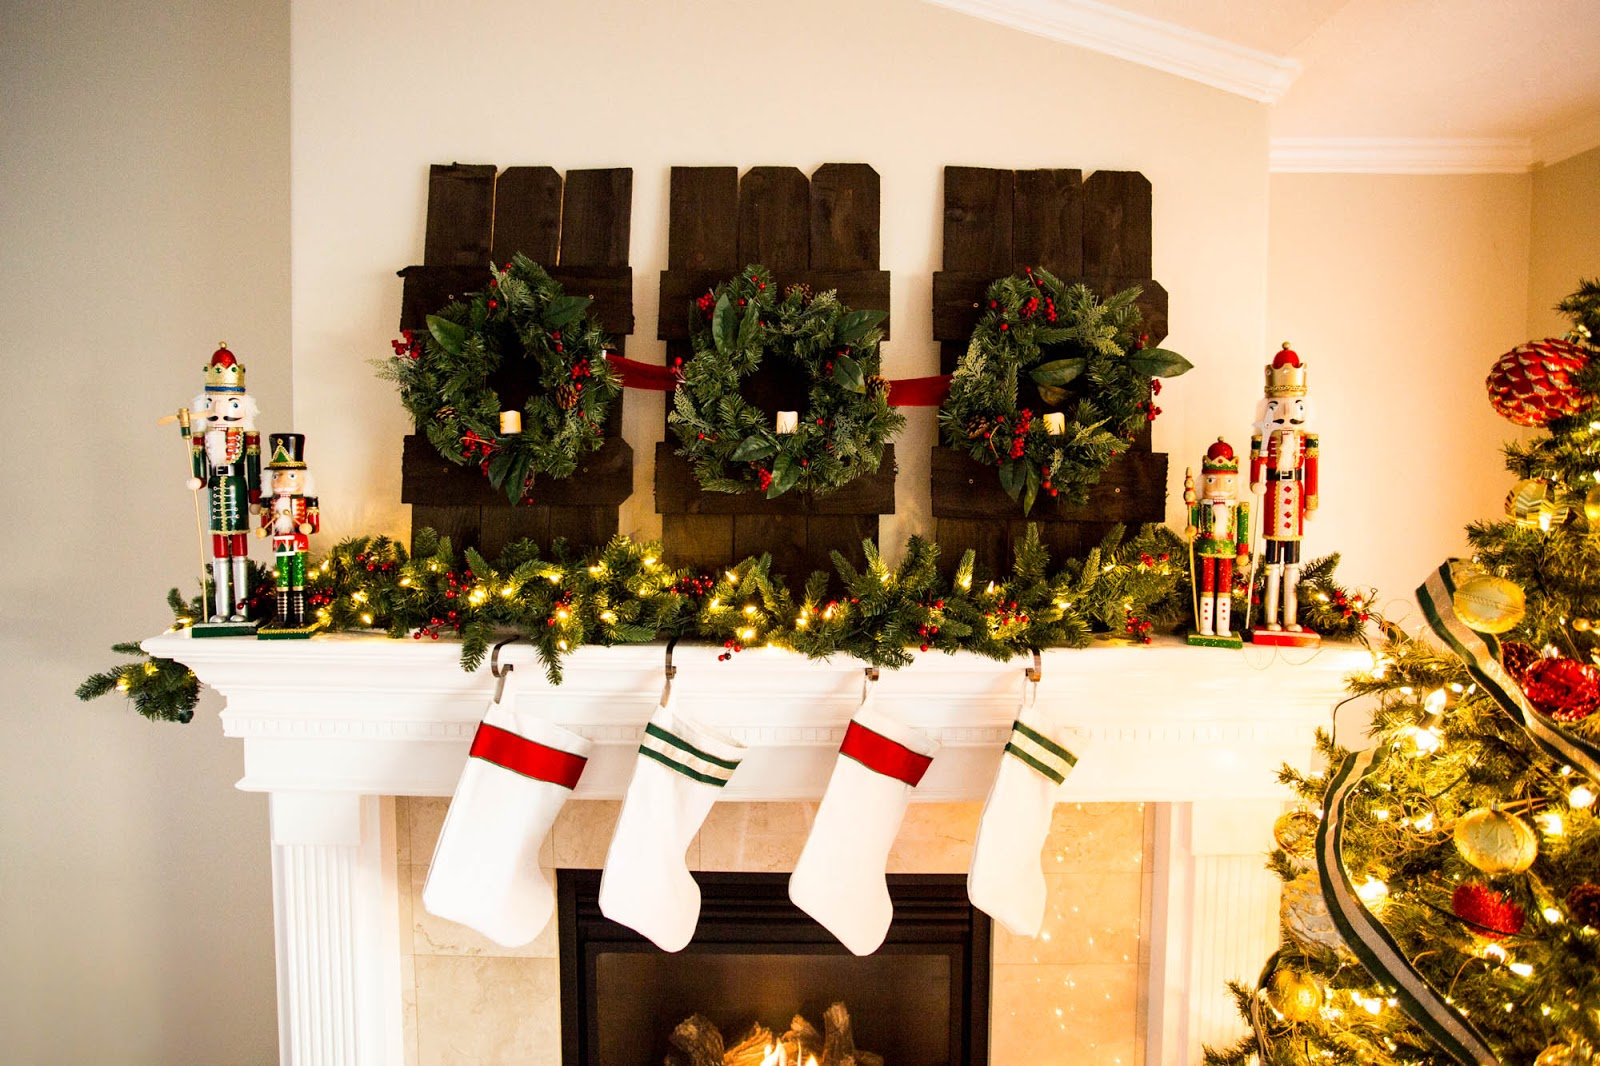 Do it yourself divas decorating a mantle for christmas with home diy christmas mantle fireplace nutcrackers garland lights candles solutioingenieria Choice Image